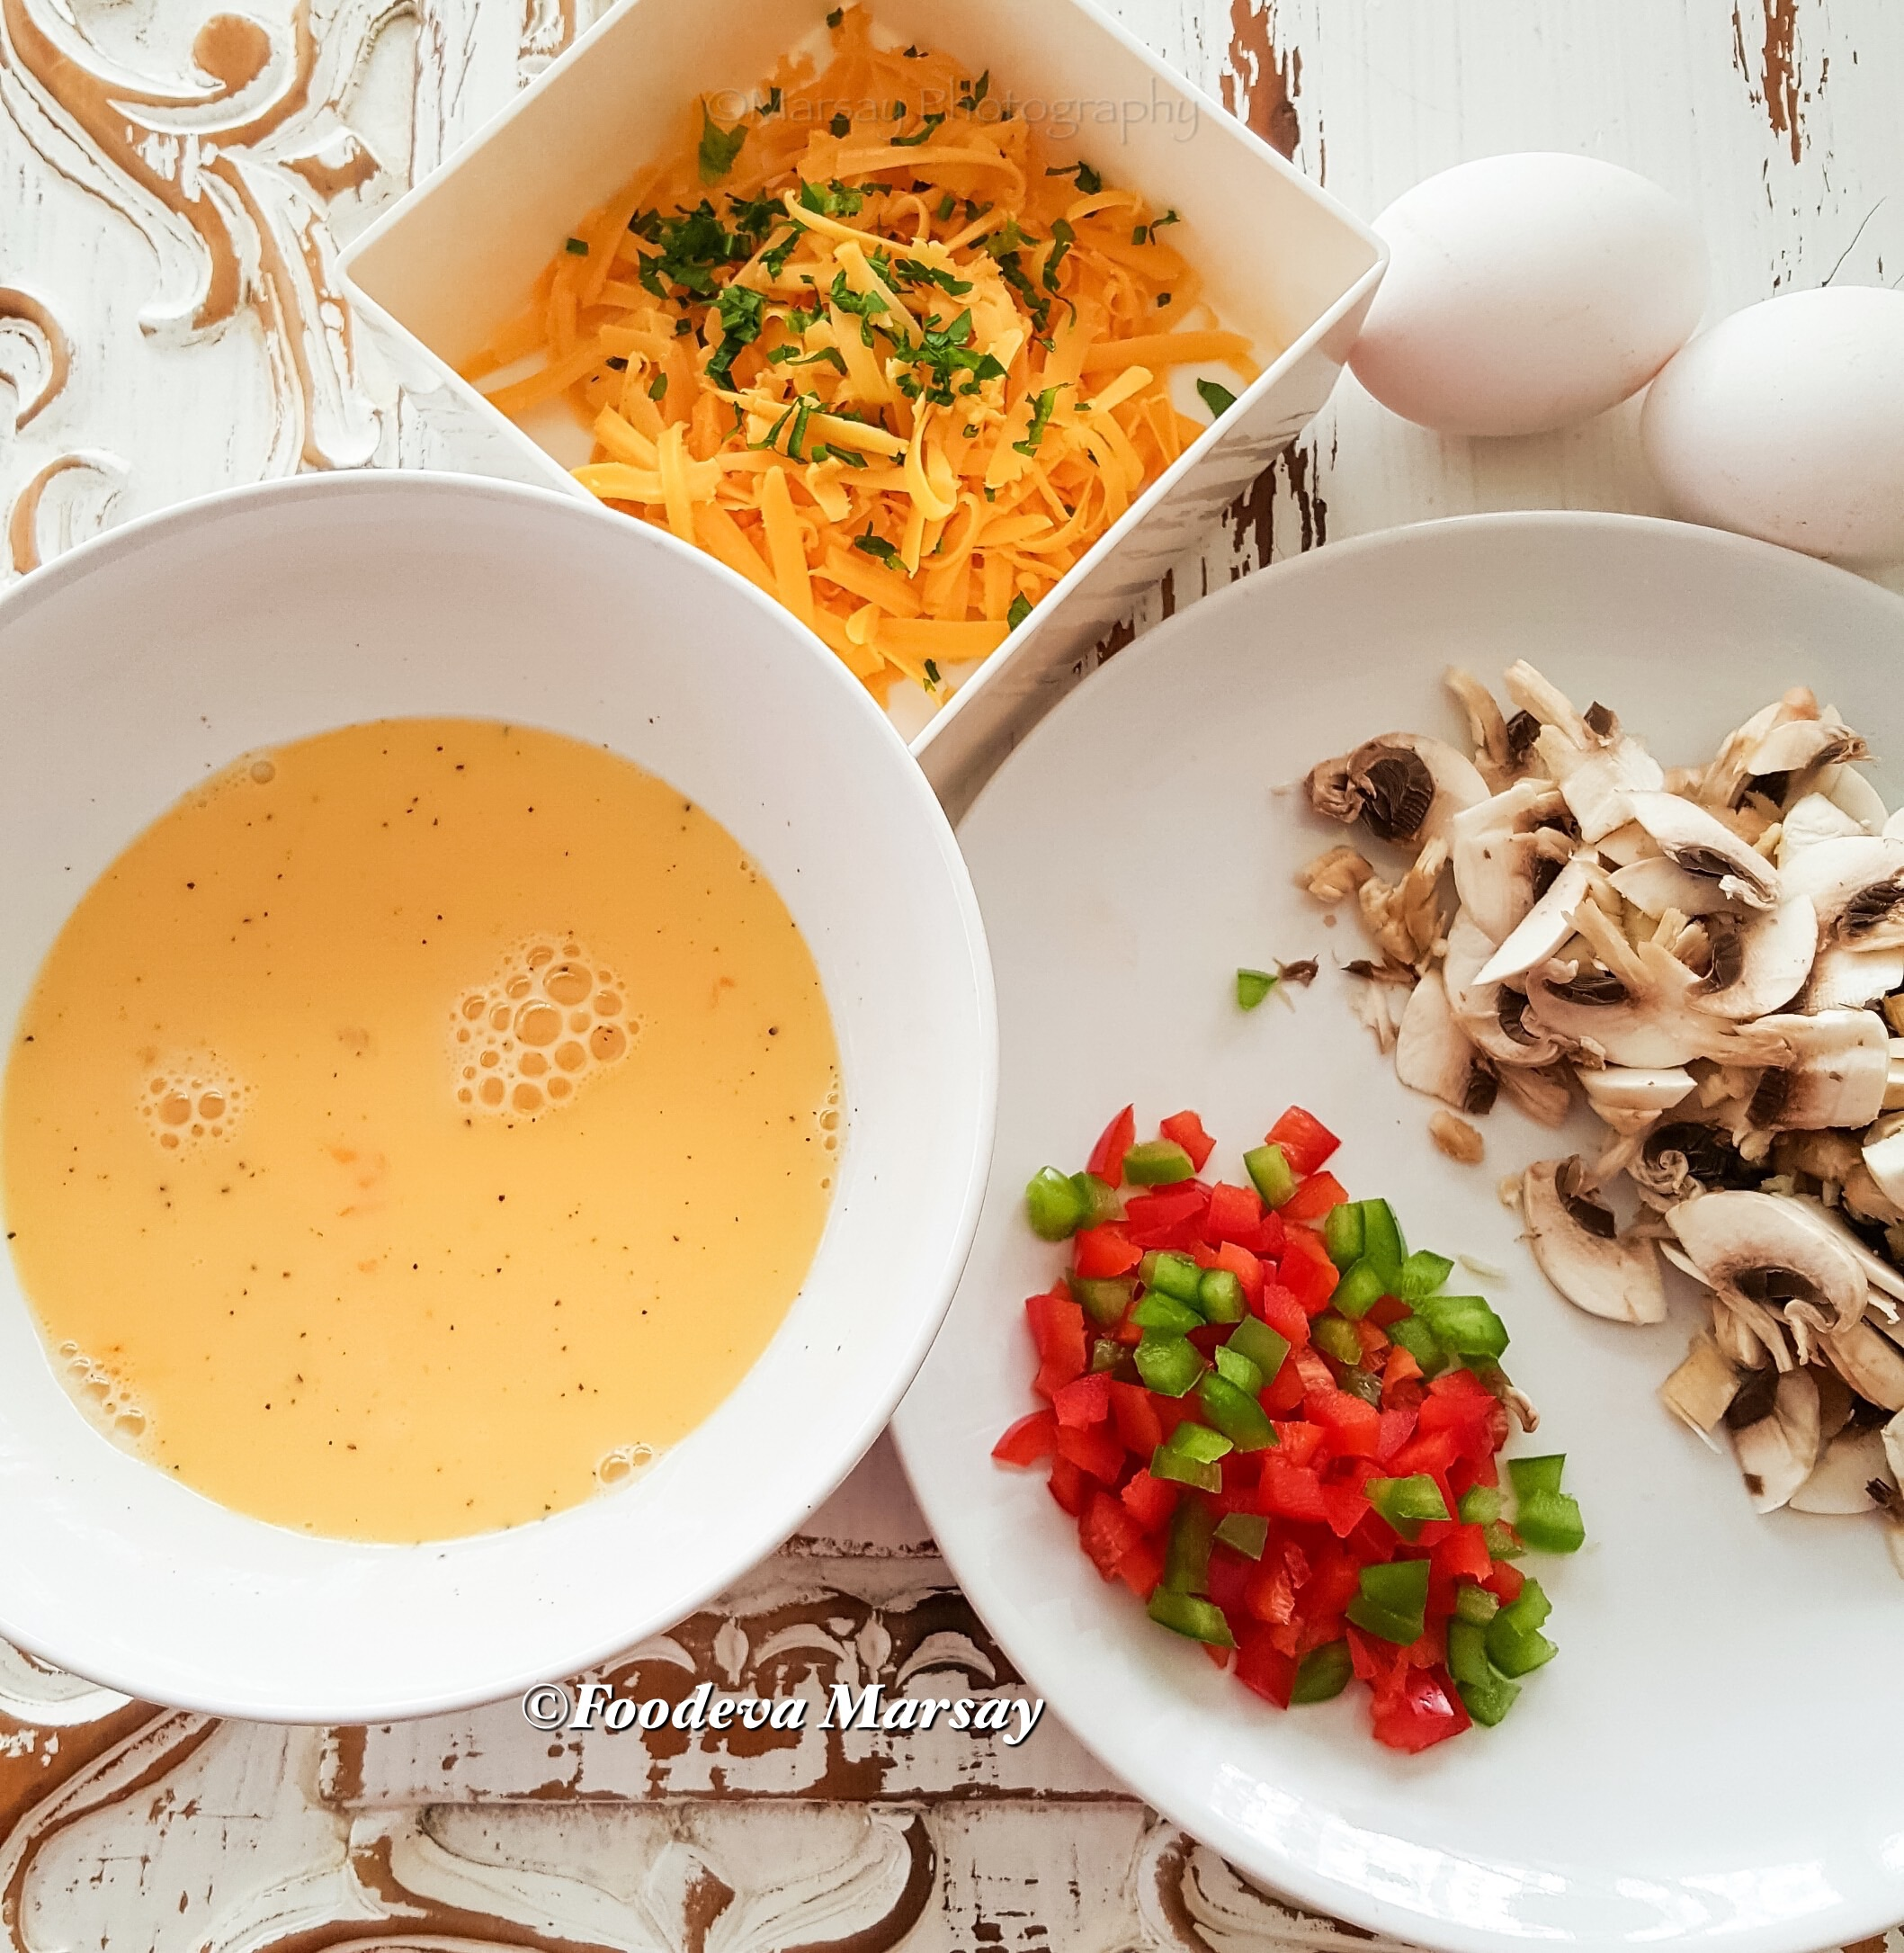 A Simple Omelette Ingredients